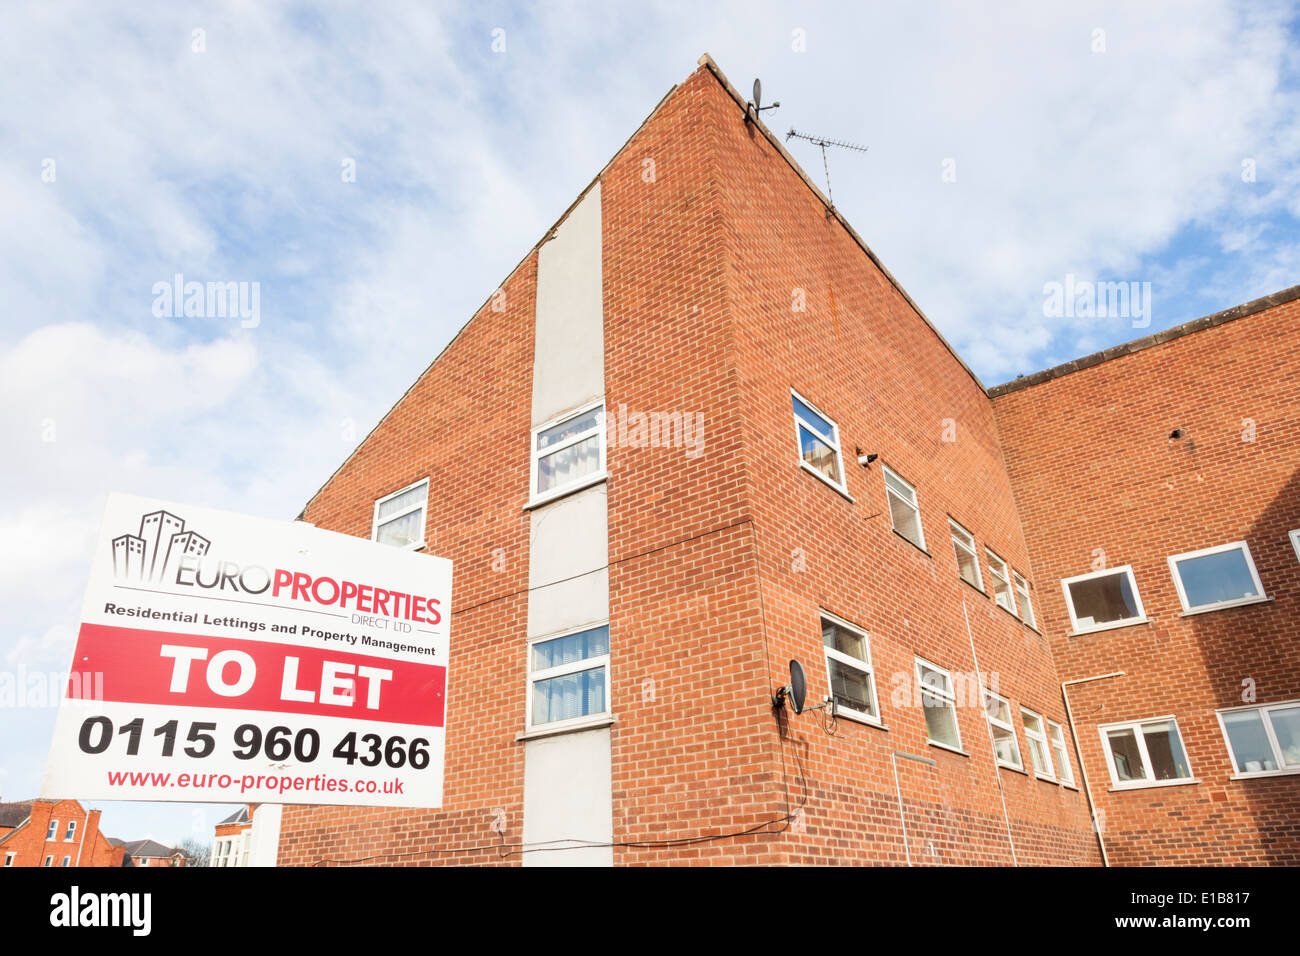 Letting agent board or sign showing apartments, flats and housing property to let, Nottinghamshire, England, UK - Stock Image